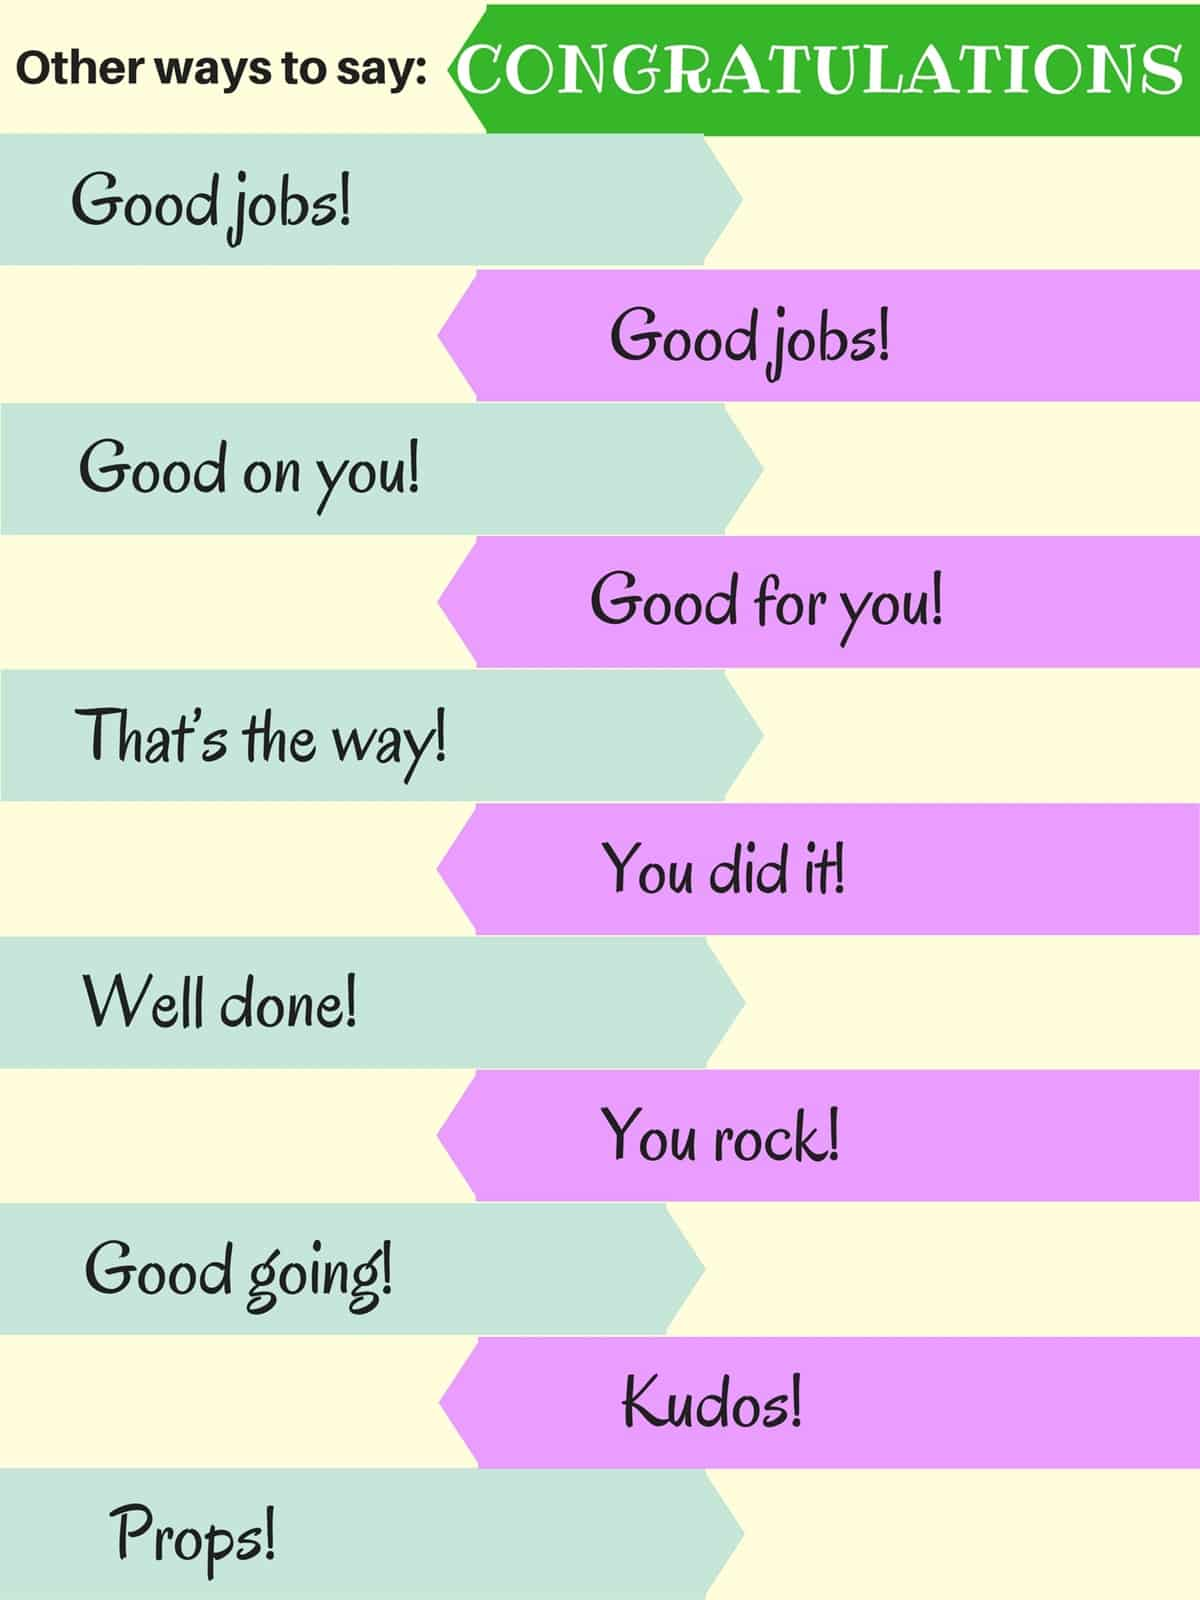 Other Ways to Say: Congratulations